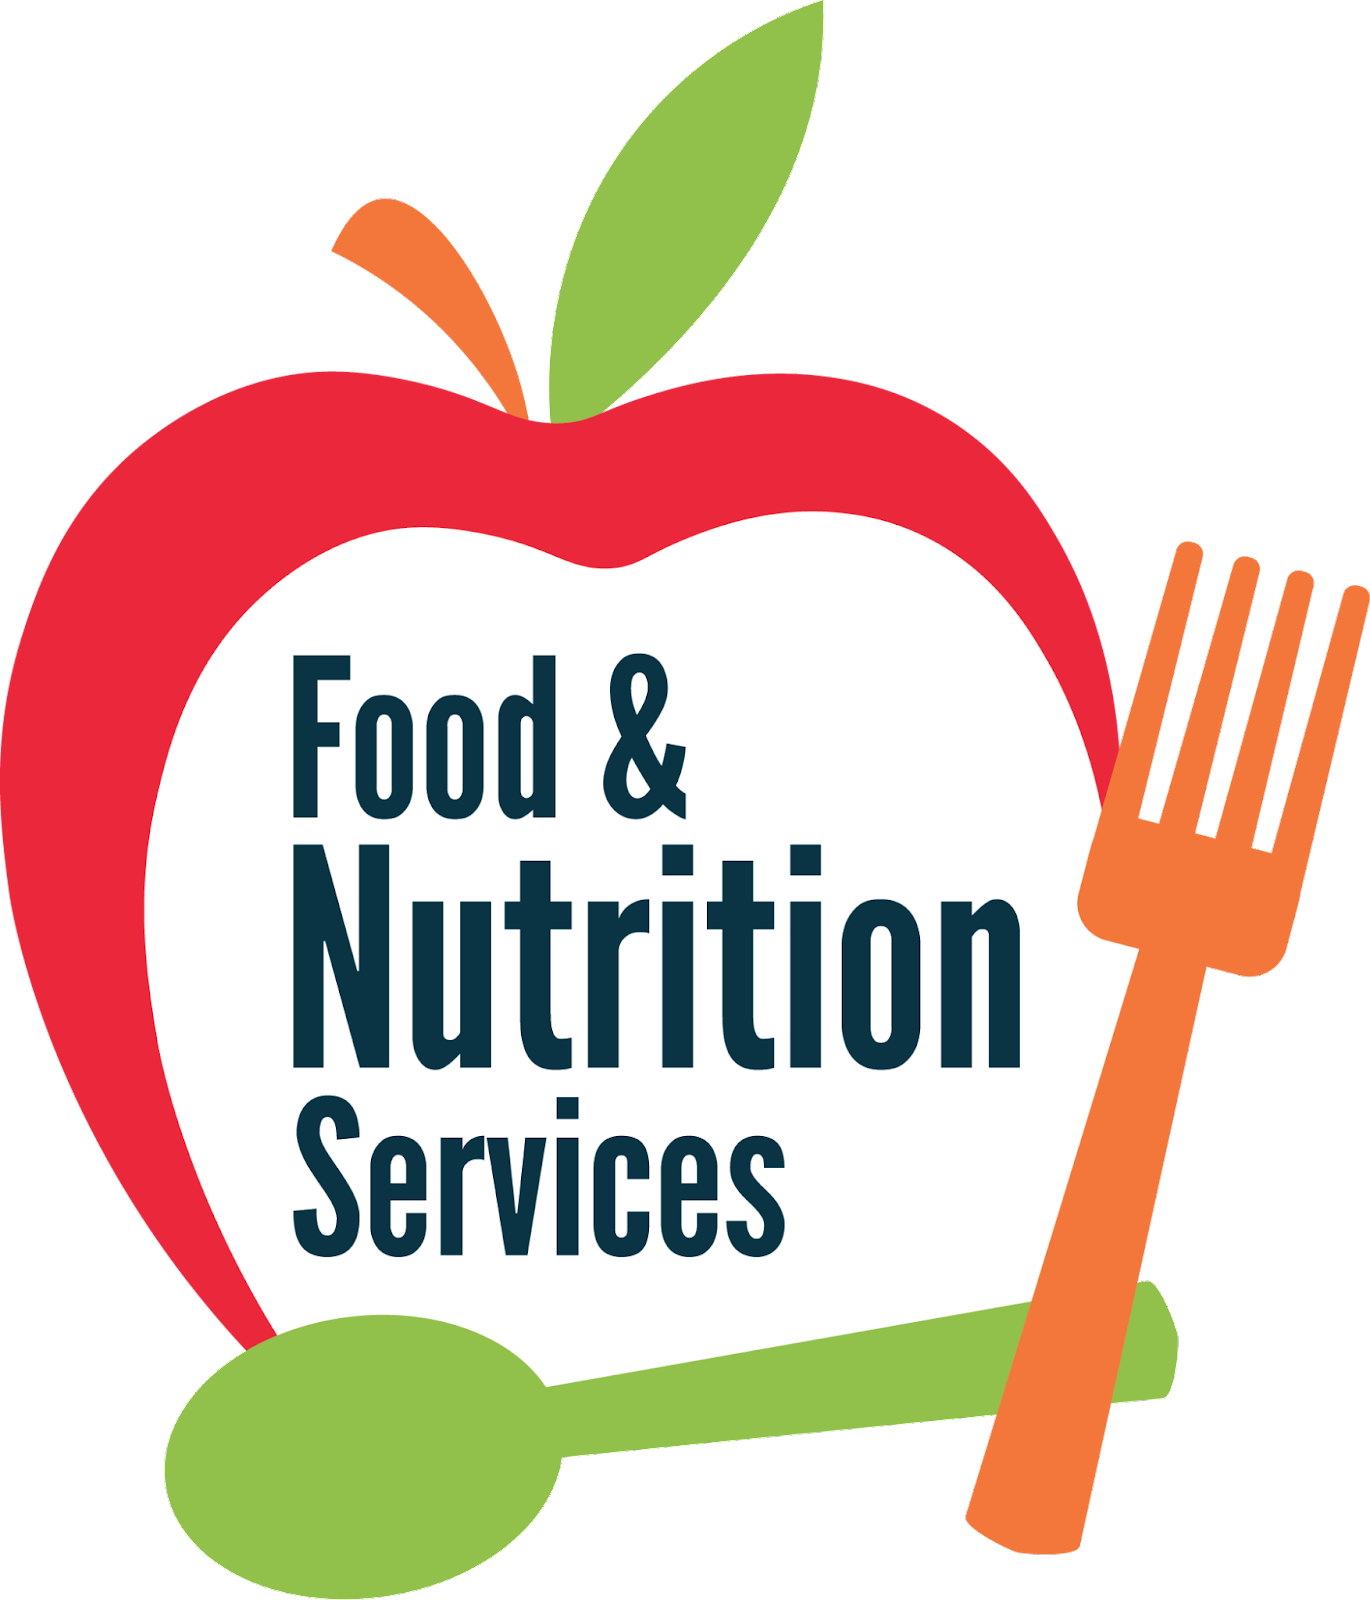 Food & Nutrition Services Logo